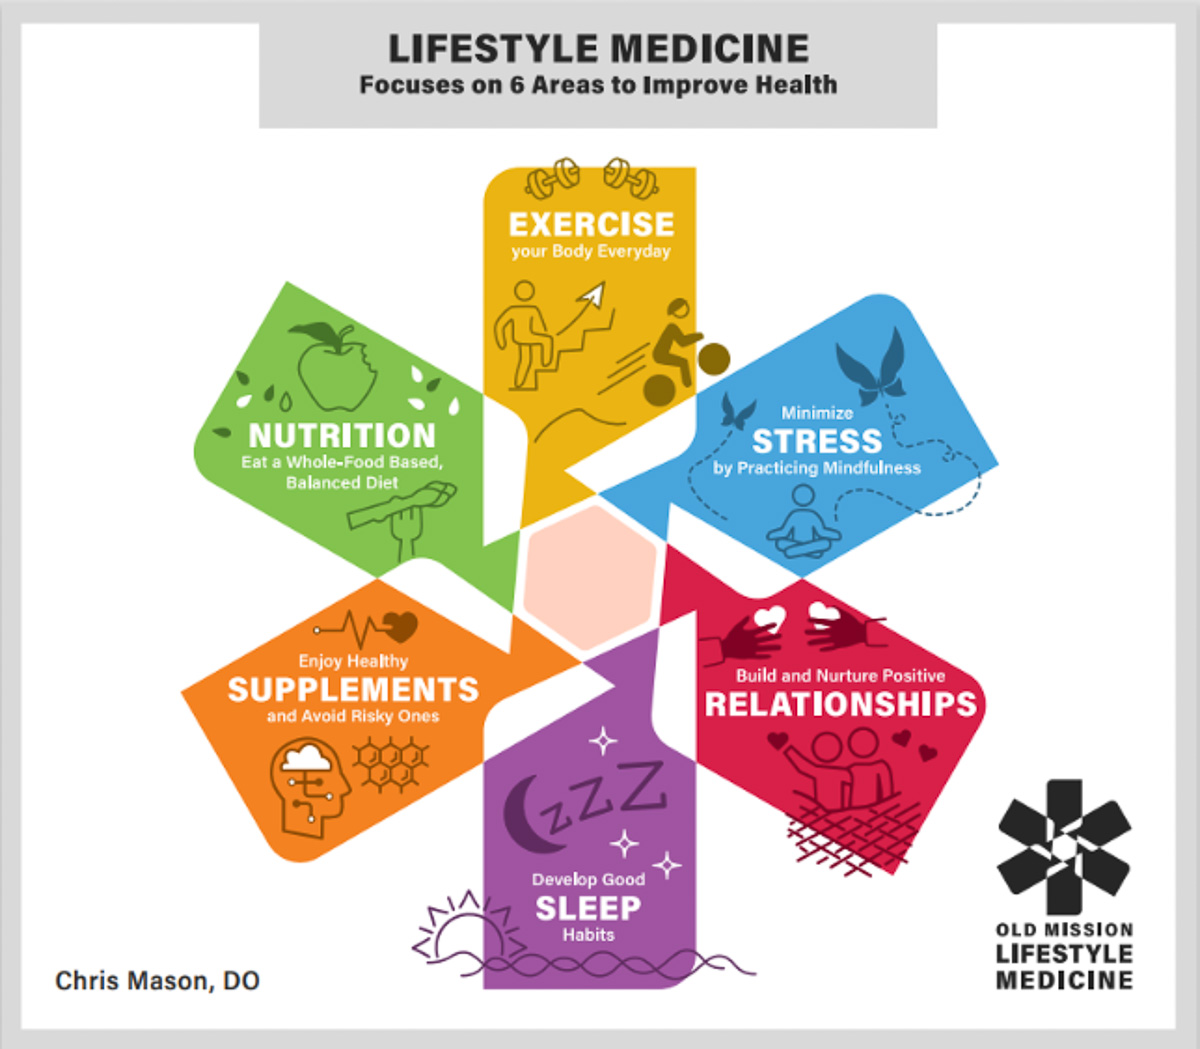 Six elements of Lifestyle Medicine, an approach embraced by Old Mission Lifestyle Medicine on the Old Mission Peninsula